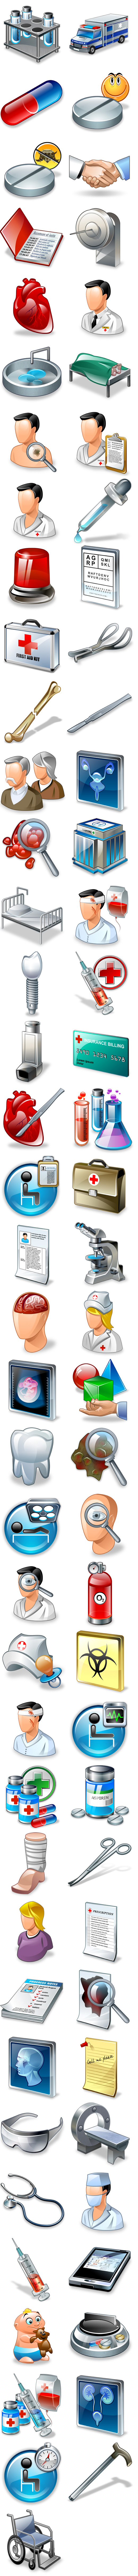 Medical and related articles Series icon